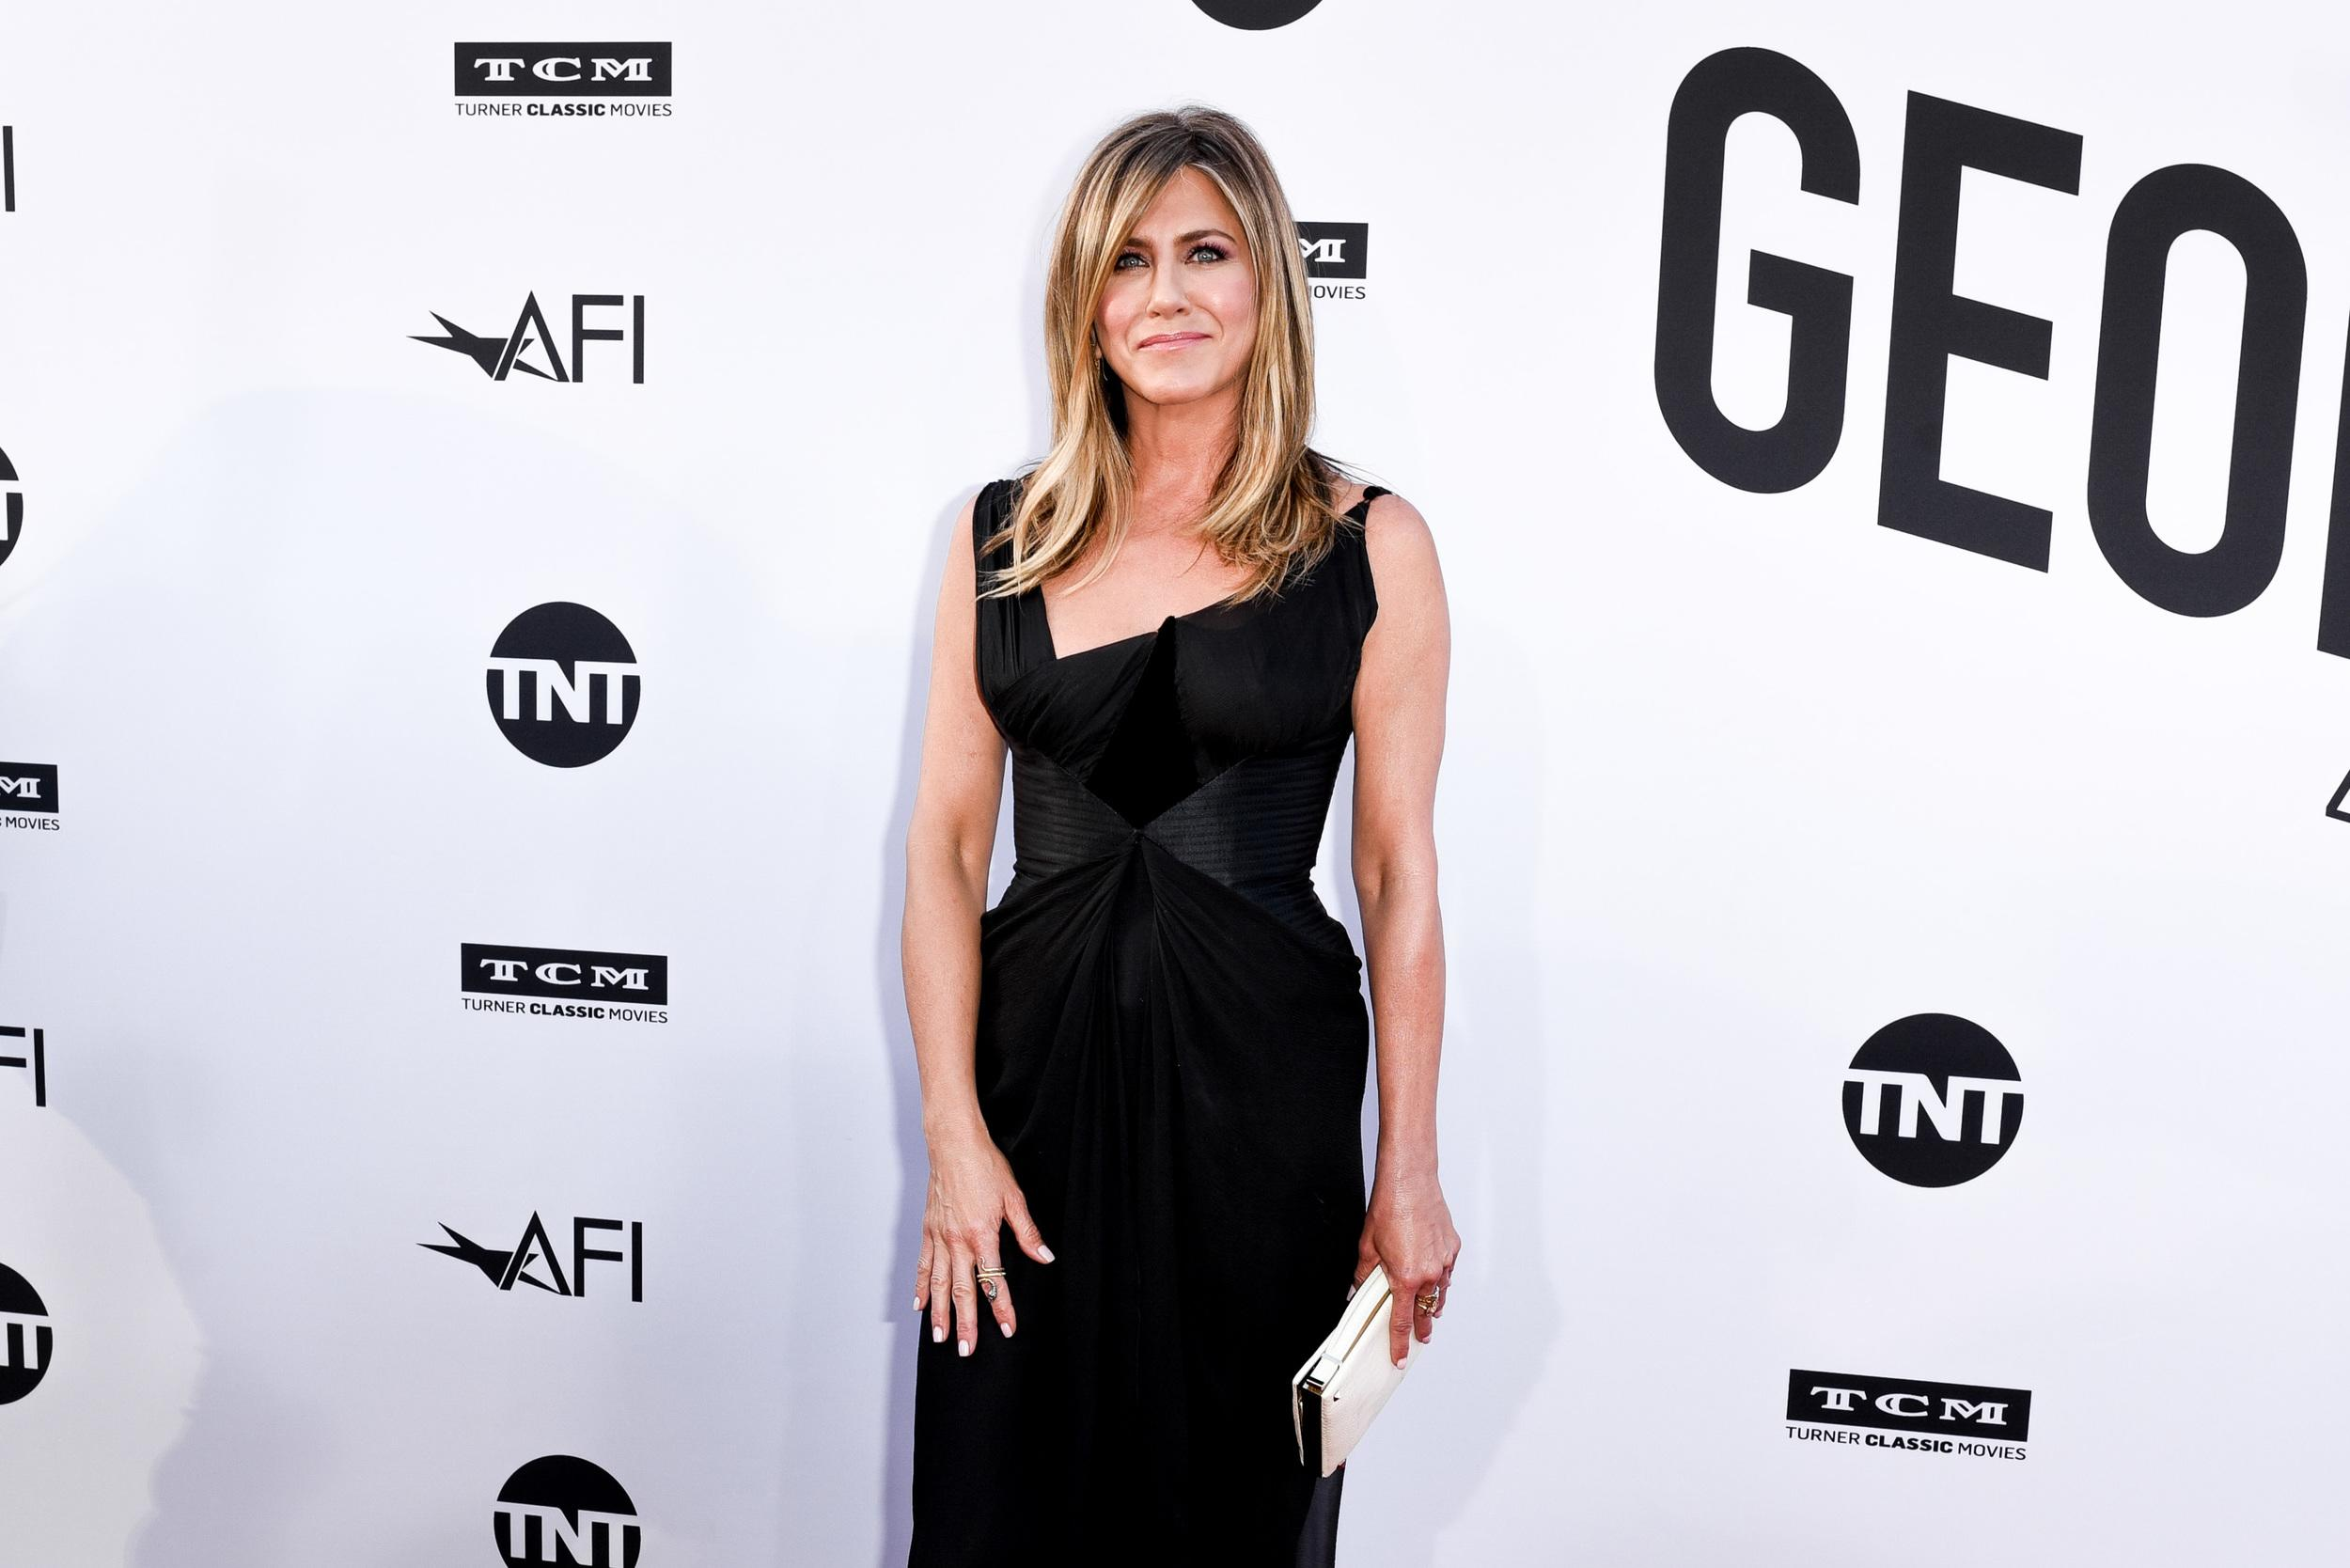 HOLLYWOOD, CA - JUNE 07:  Jennifer Aniston attends 46th AFI Life Achievement Award Gala Tribute on June 7, 2018 in Hollywood, California.  (Photo by Presley Ann/Patrick McMullan via Getty Images)